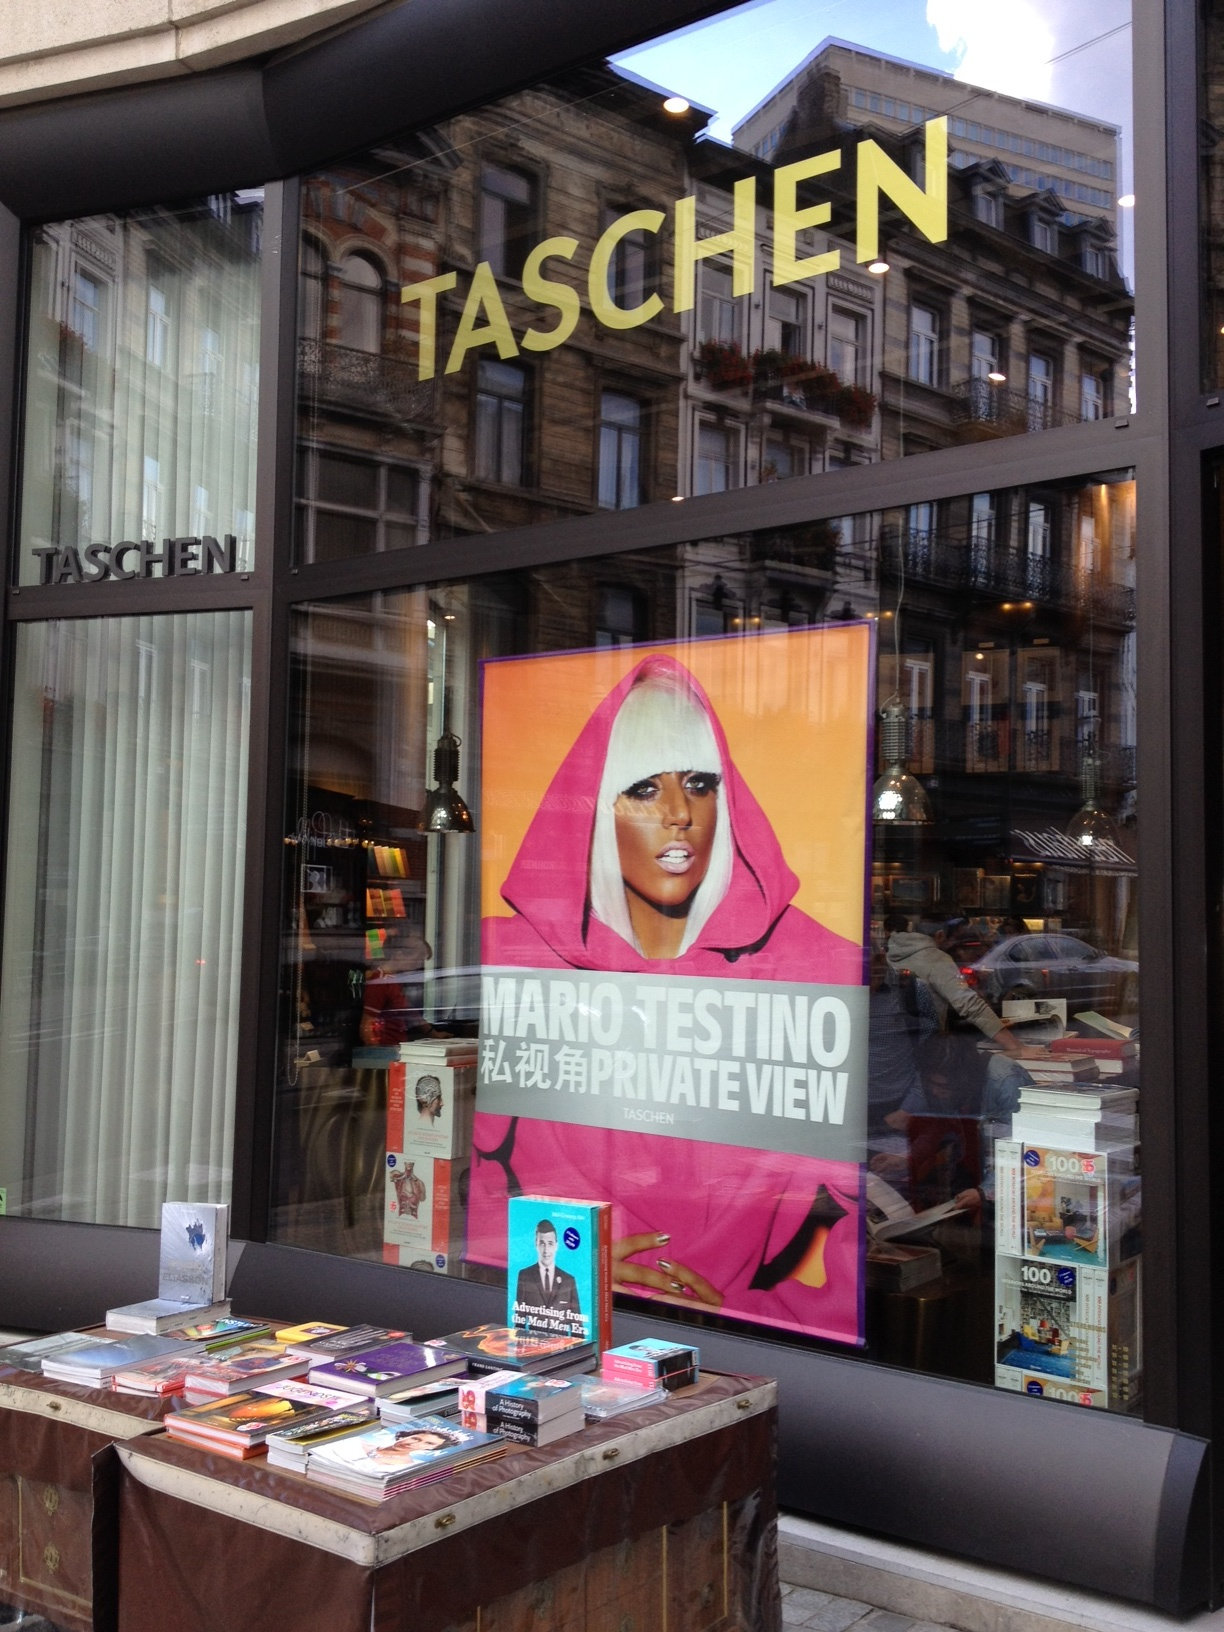 Find great deals on eBay for taschen. Shop with confidence.